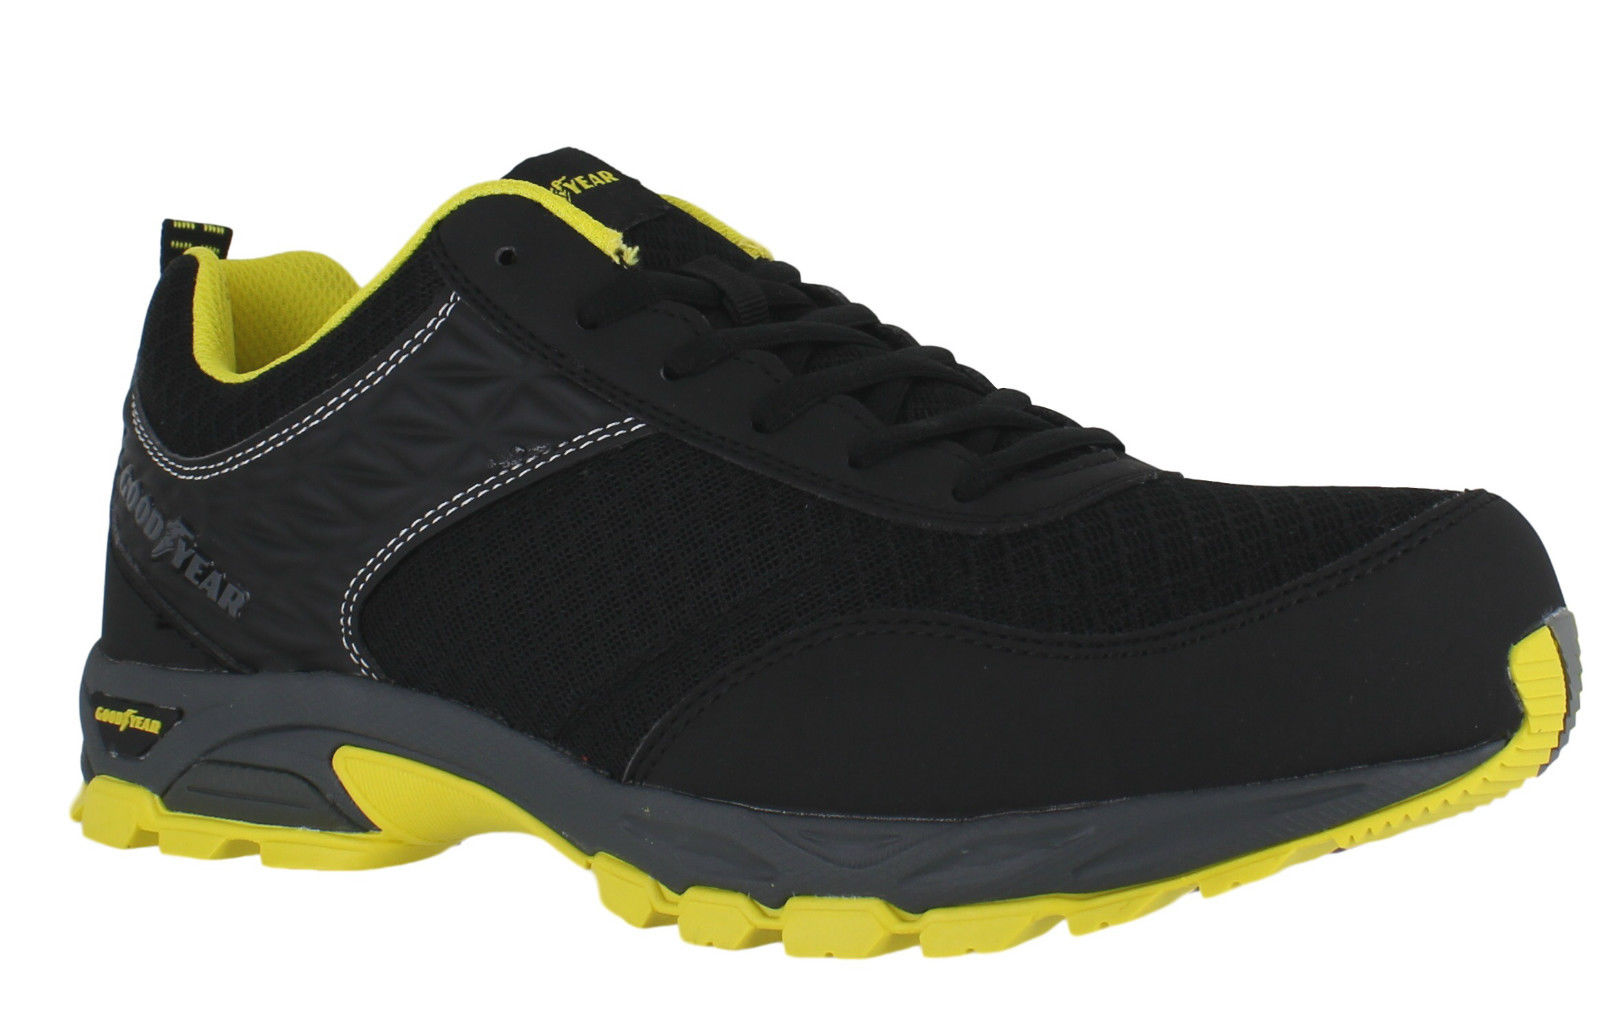 7d1632c94ee Details about Goodyear Mens - Safety Trainers Shoes - S1P SRA Metal-Free  Toe/Midsole